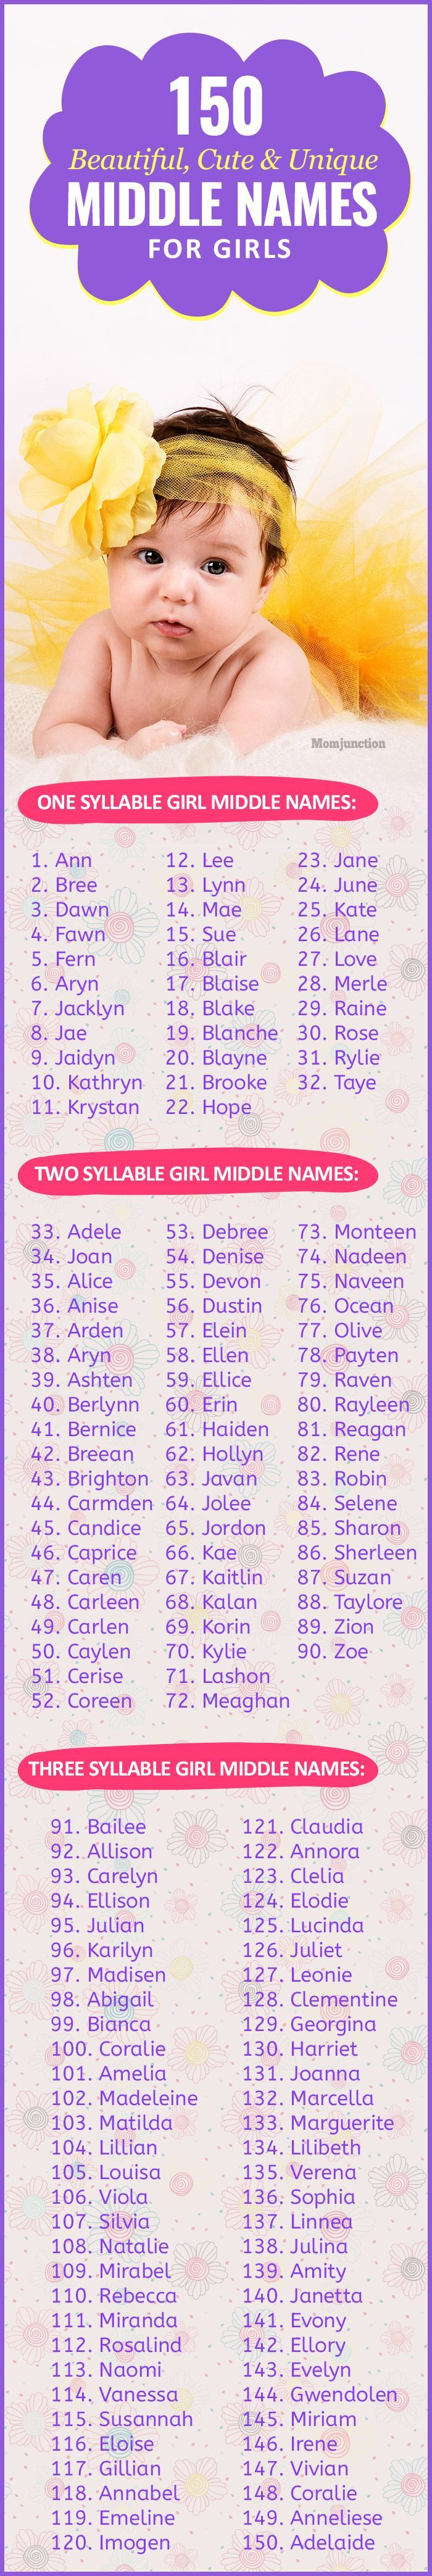 150 Beautiful, Cute, And Unique Middle Names For Girls